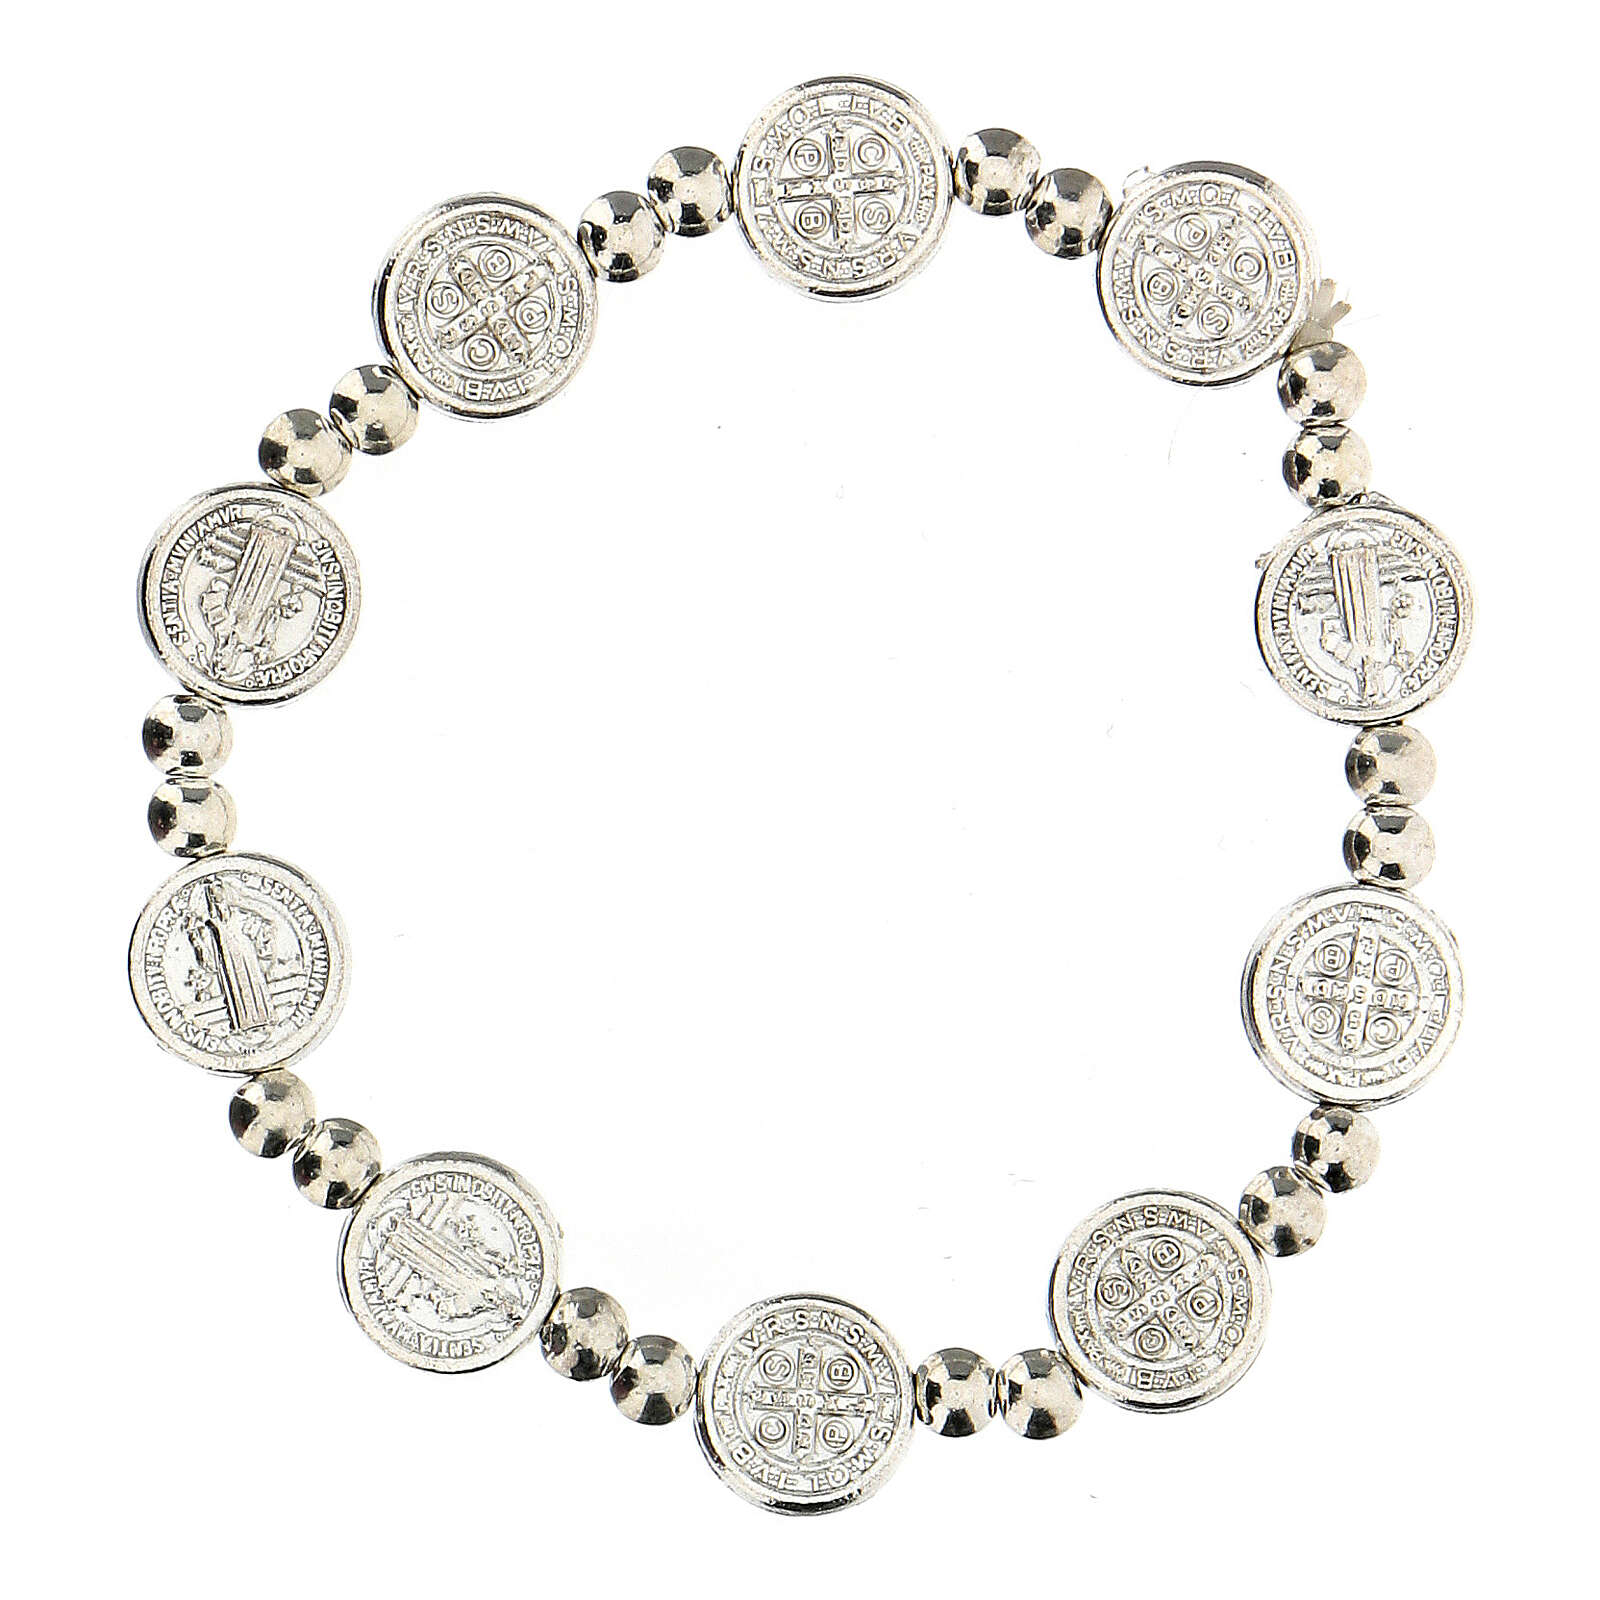 Decade rosary bracelet with silver zamac medals 4